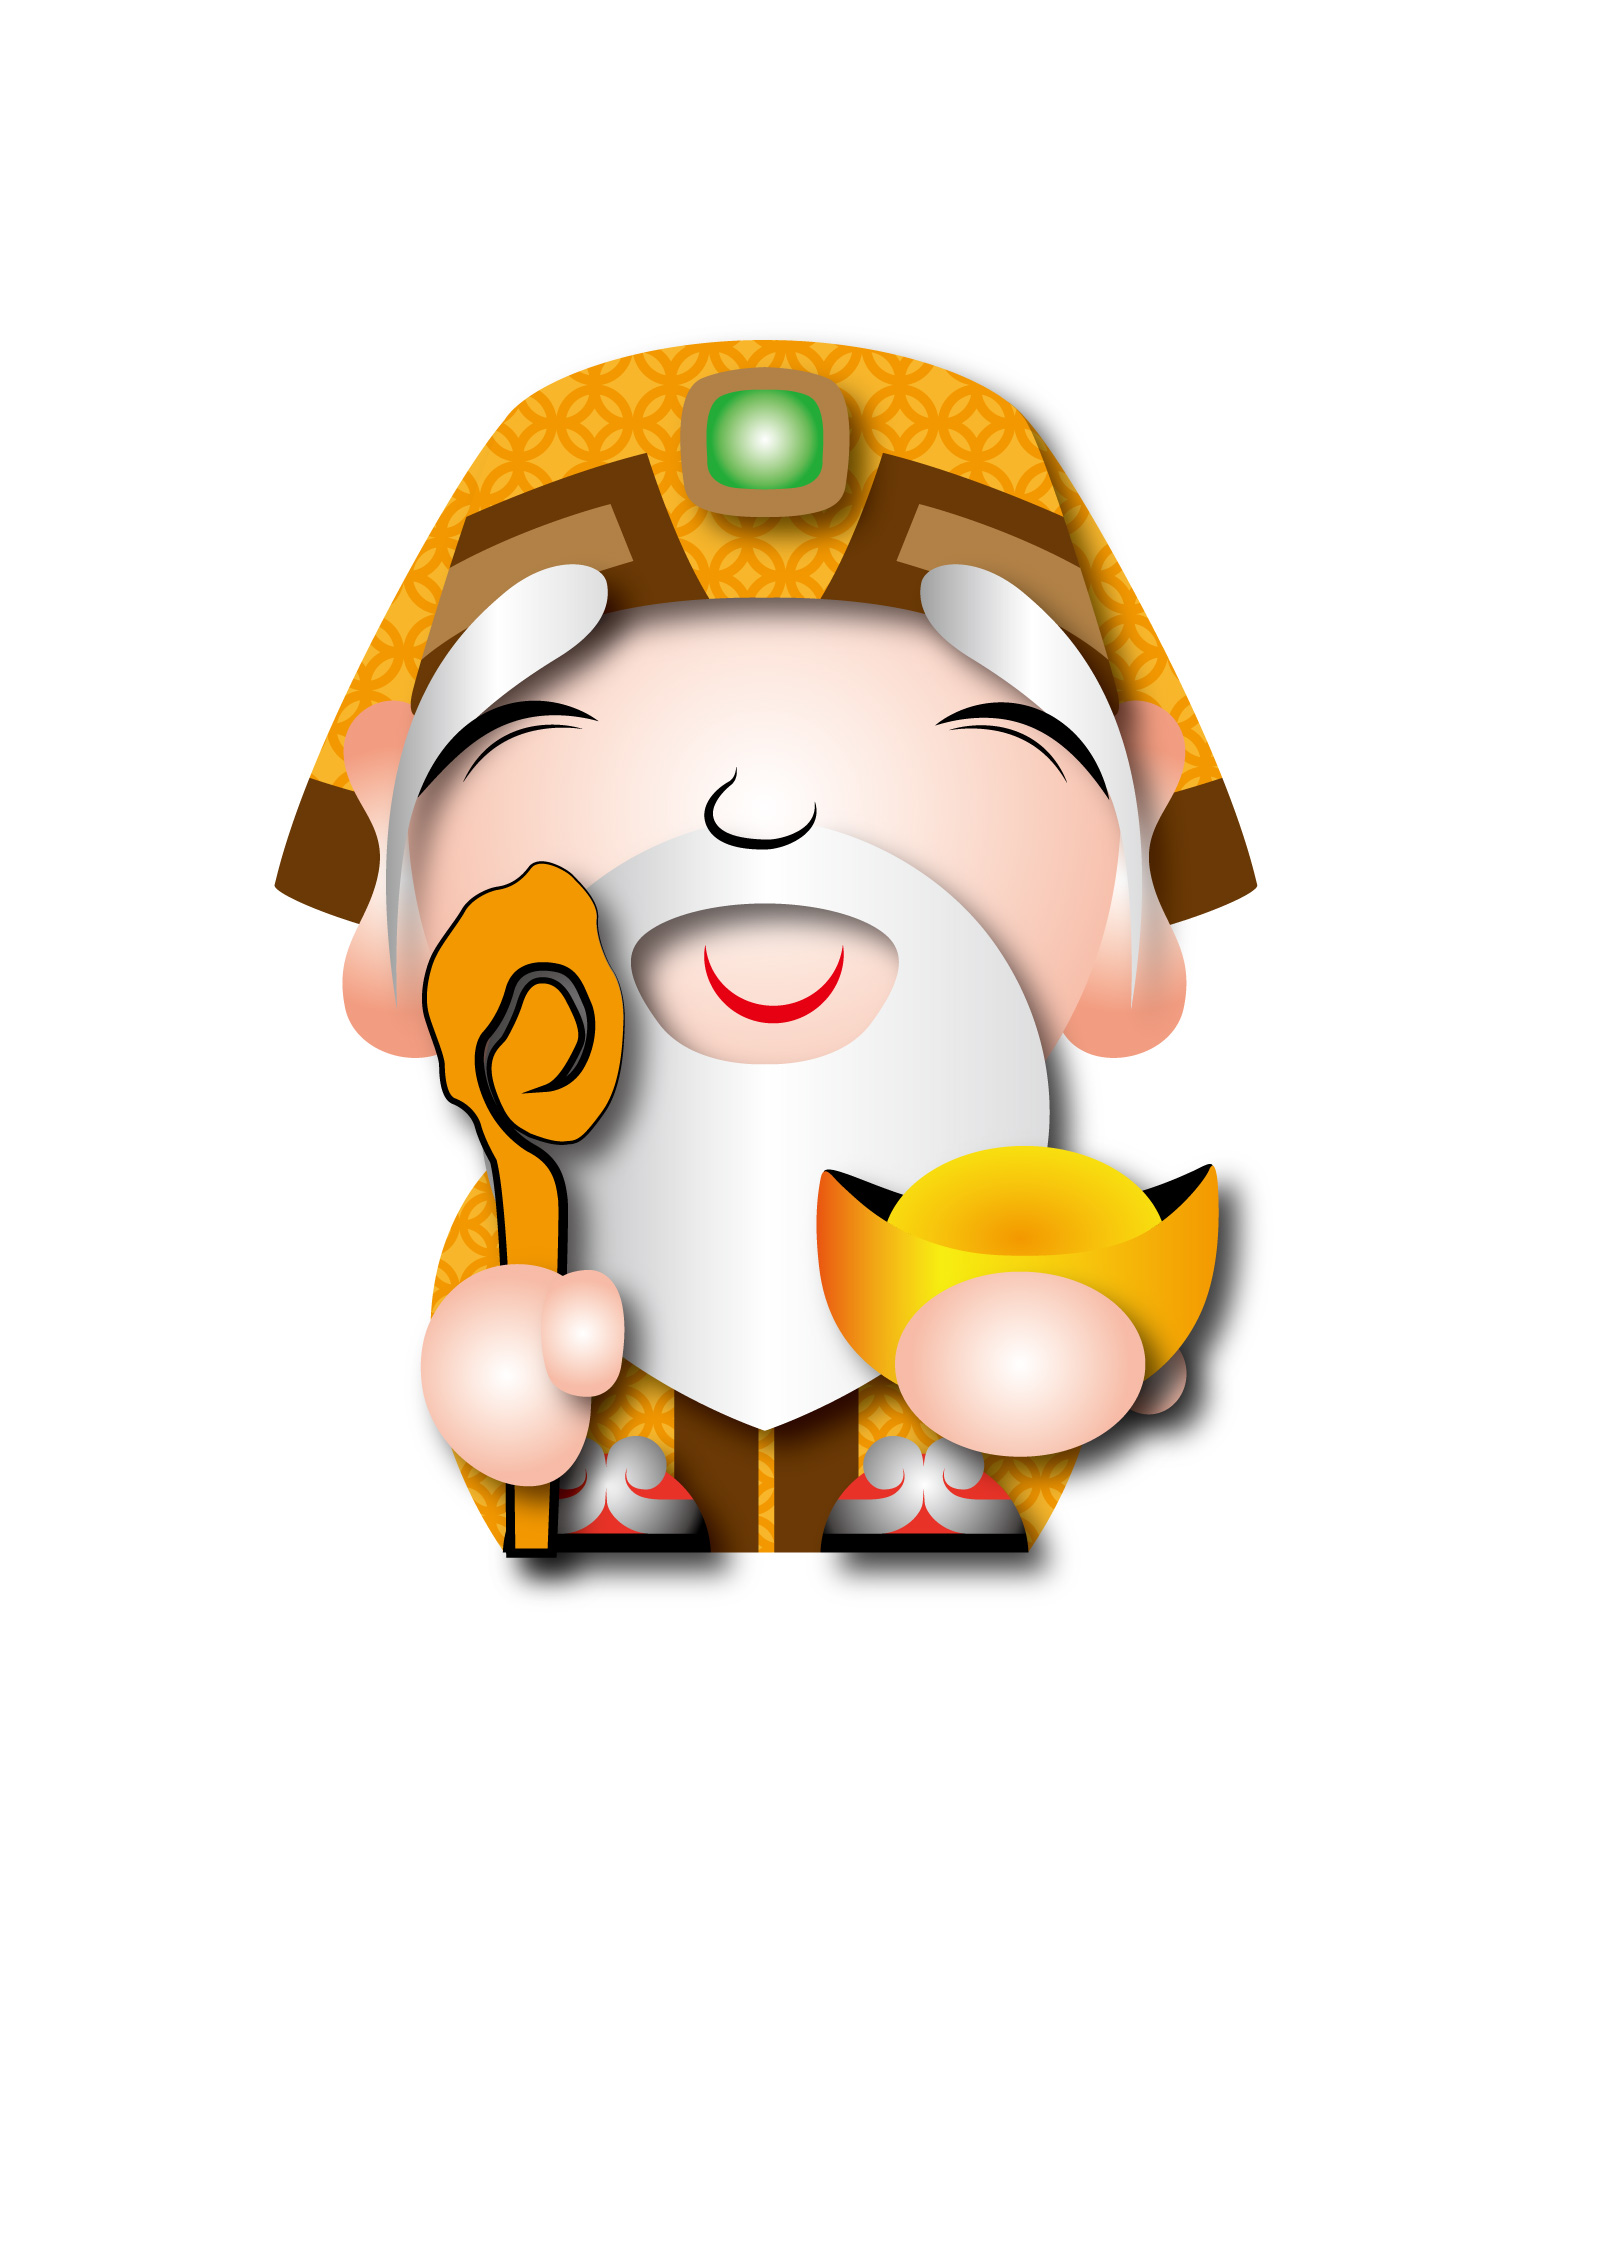 chinesefontdesign.com 2017 03 09 10 03 21 God of fortune vector cartoon characters Illustrations Vectors AI ESP Free Download